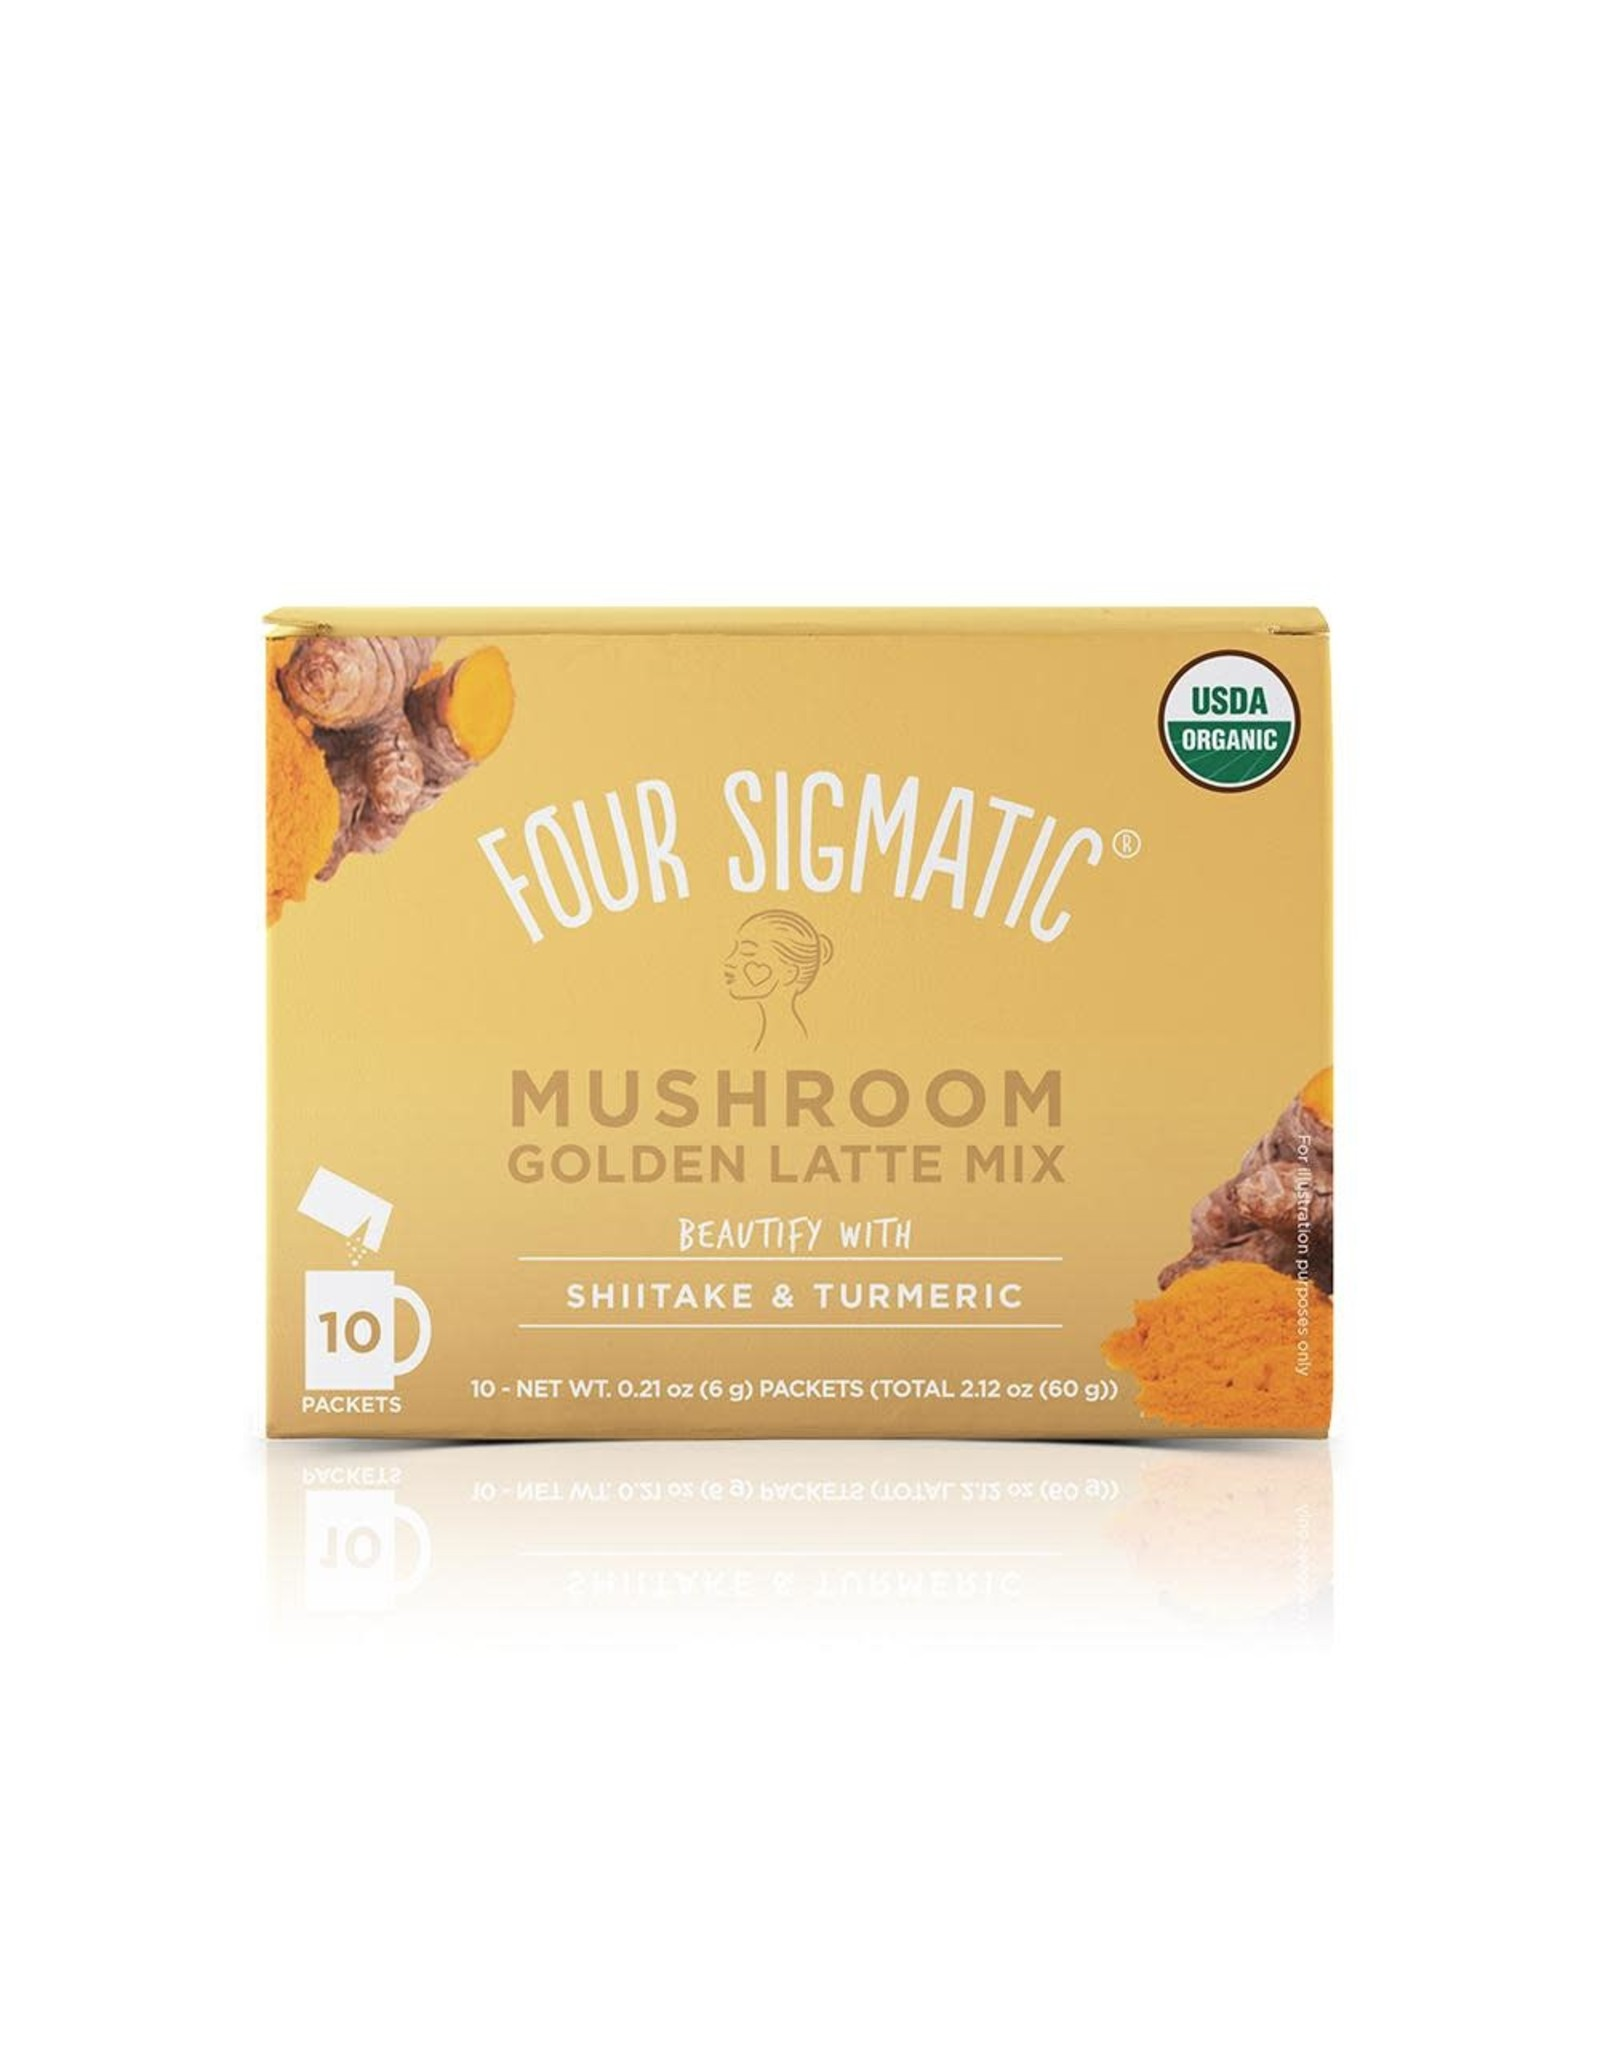 Four Sigmatic Mushroom Golden Latte Mix w/ Shiitake & Turmeric